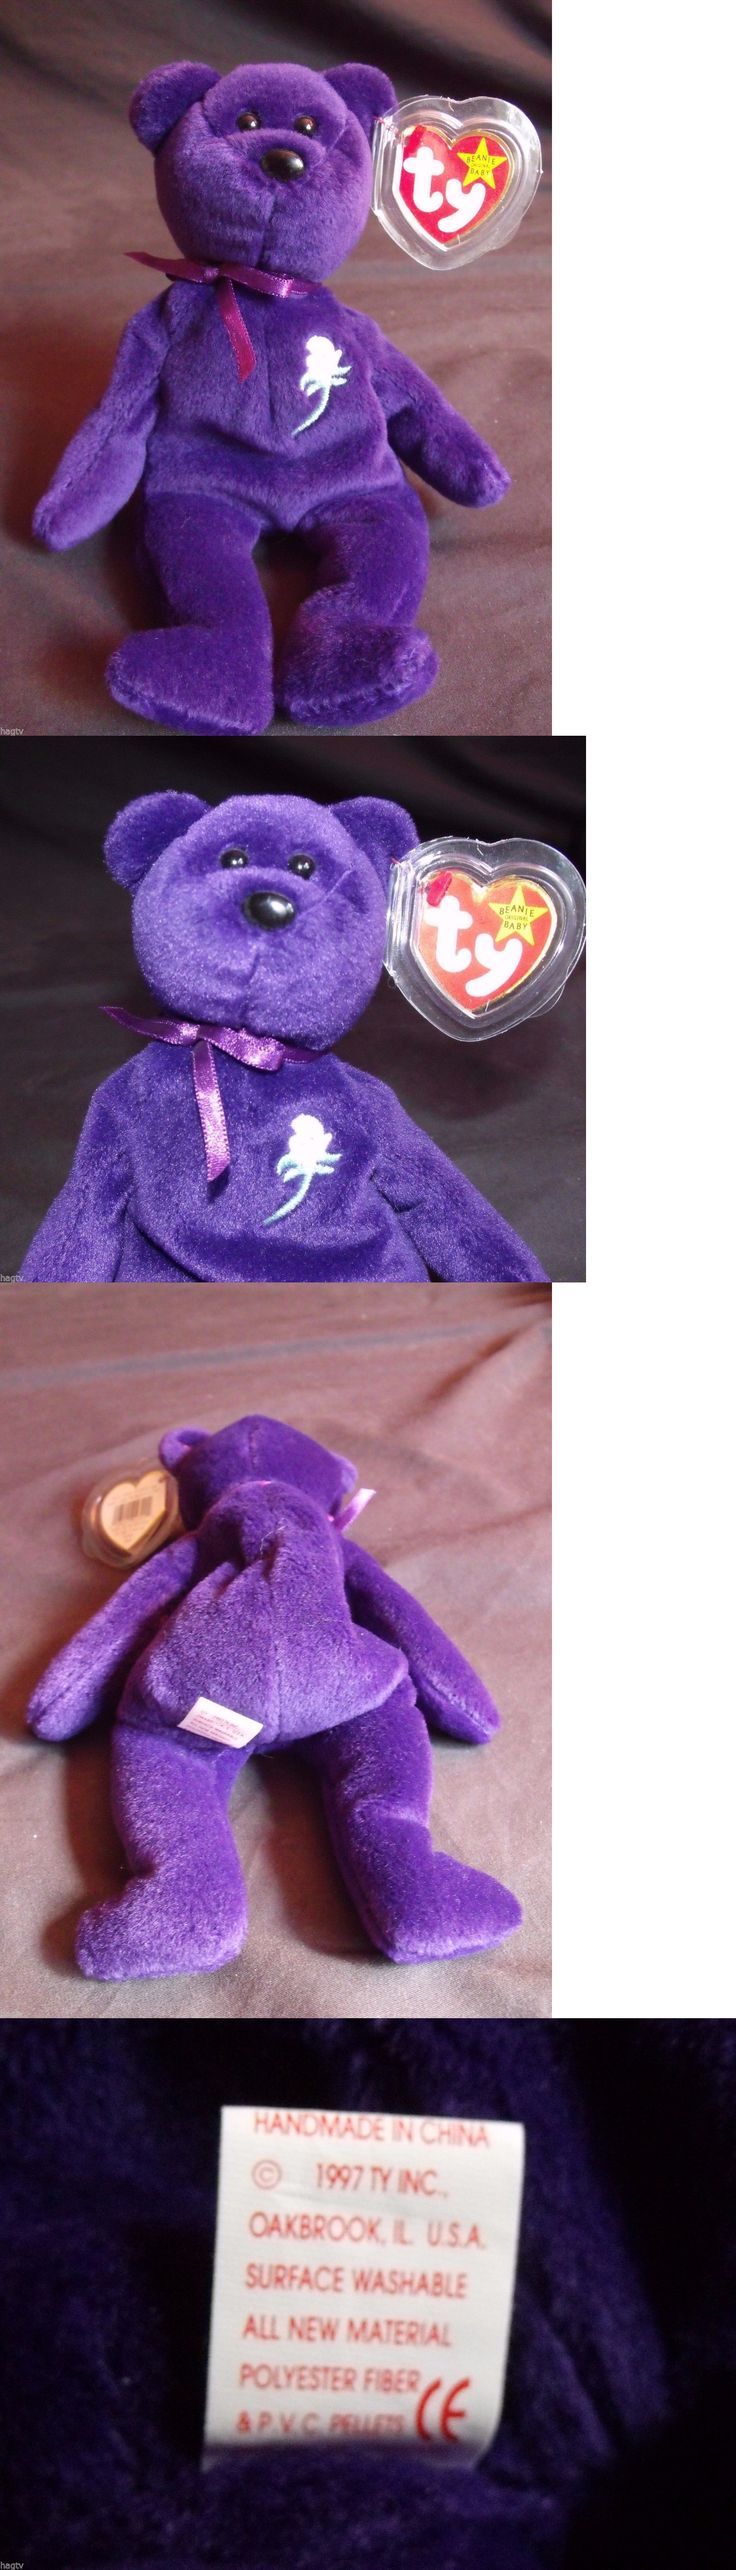 Retired 1636: 1997 Authentic Ty Beanie Babies Princess Diana Di 1St Edition Pvc China No Space -> BUY IT NOW ONLY: $19999.95 on eBay!